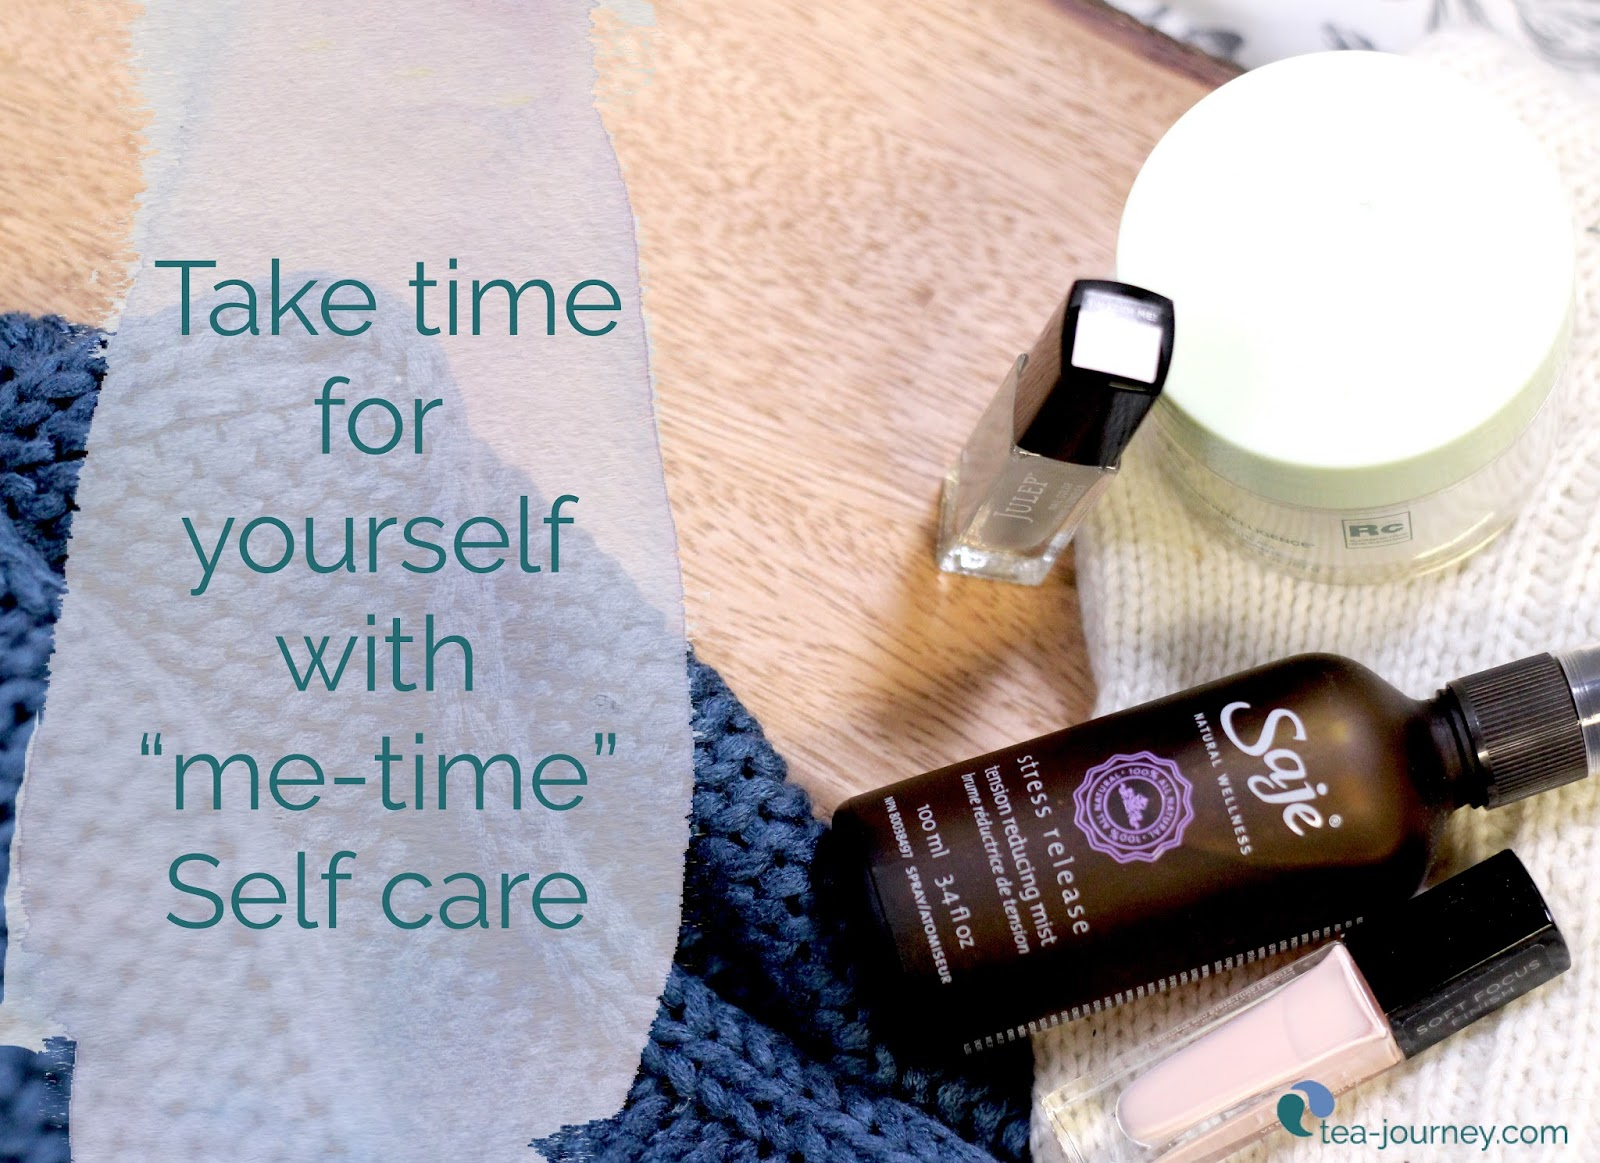 Grab some great idea for your self care (or me time) no matter how busy your day is. Enjoy this list of simple self care ideas and treat yourself to some zen.